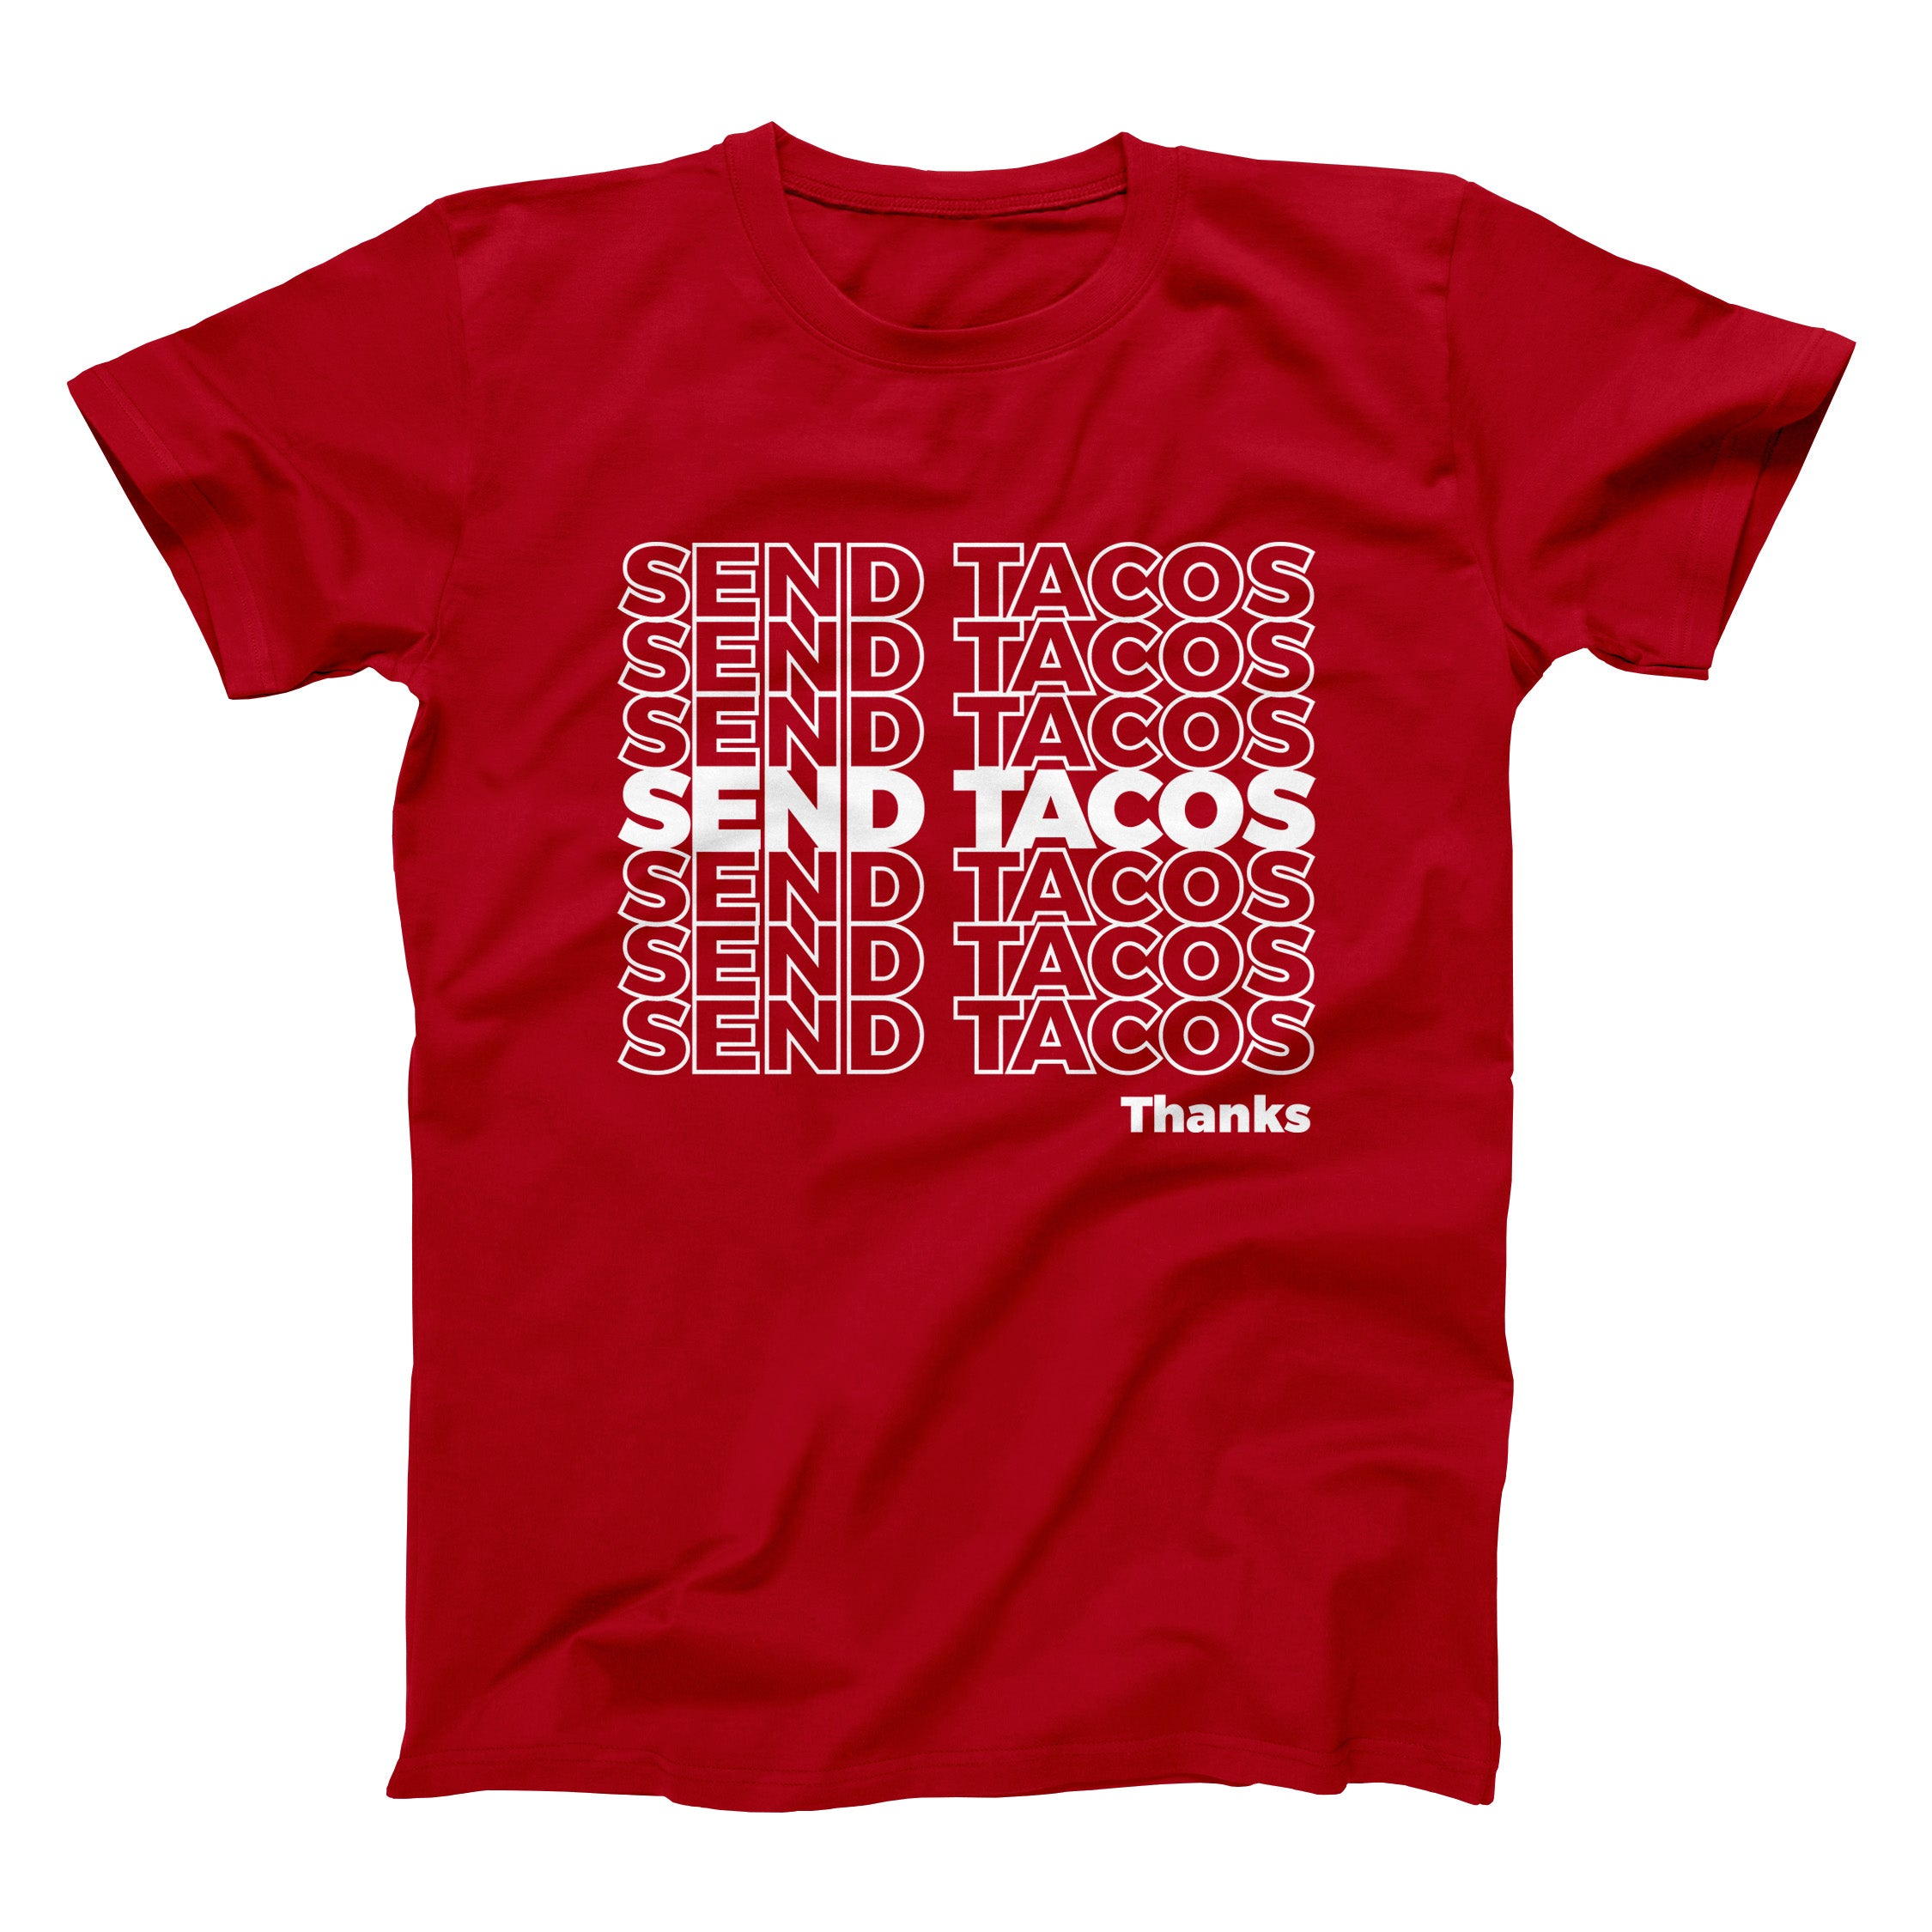 Send Tacos Shirt - Taco Gear